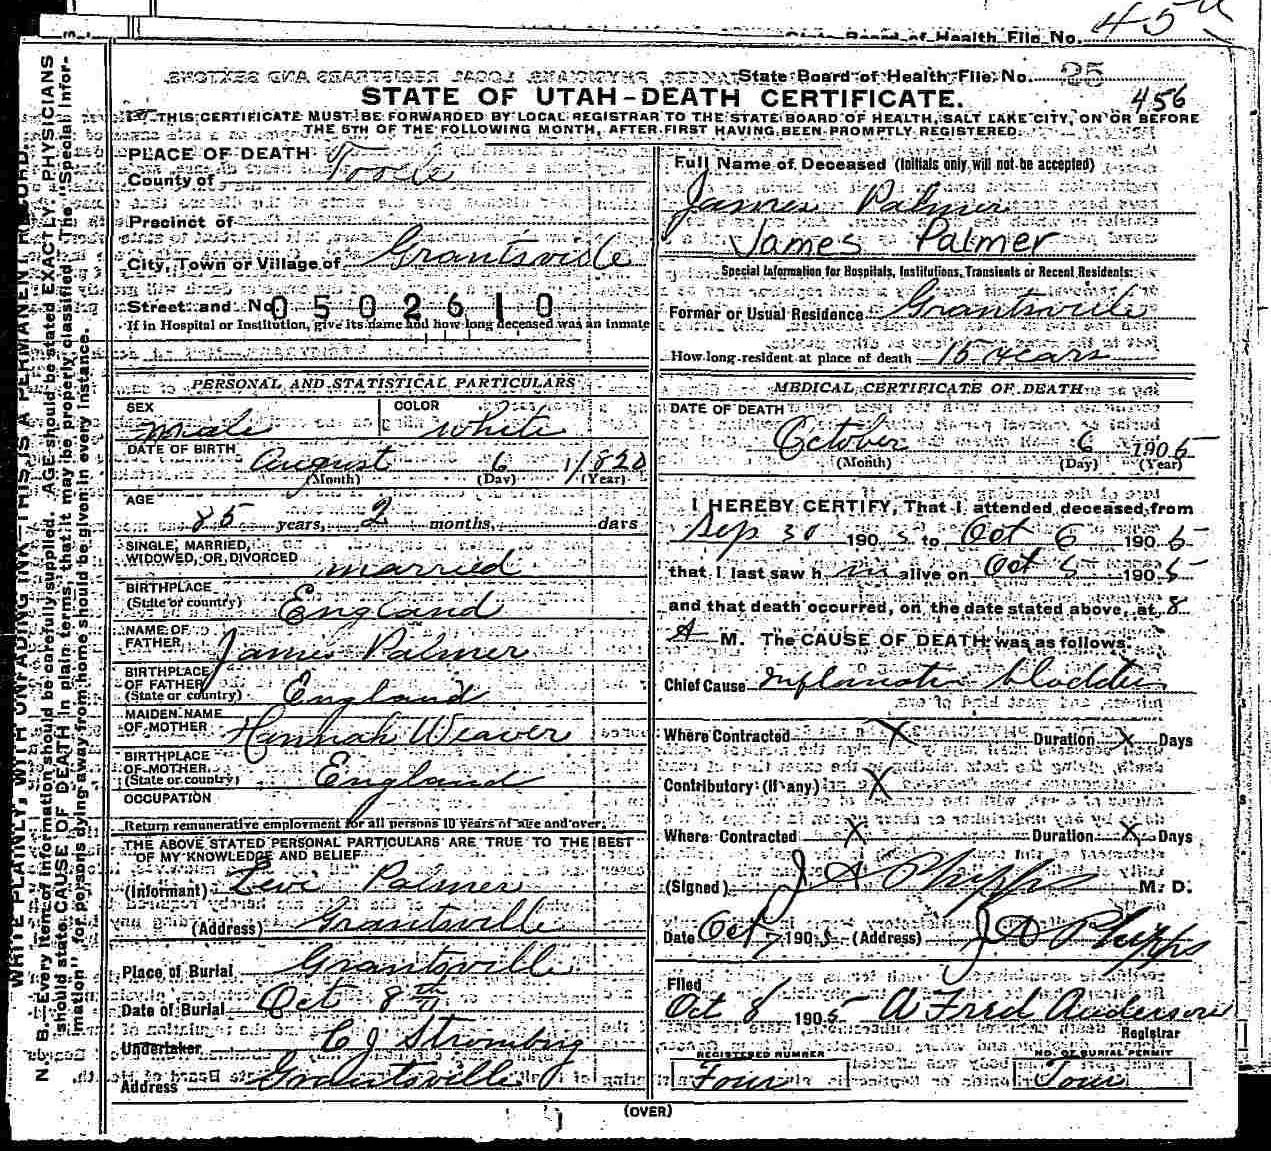 Documents james palmer 1820 1905 death certificate the watson documents james palmer 1820 1905 death certificate the watson clan genealogy 1betcityfo Choice Image